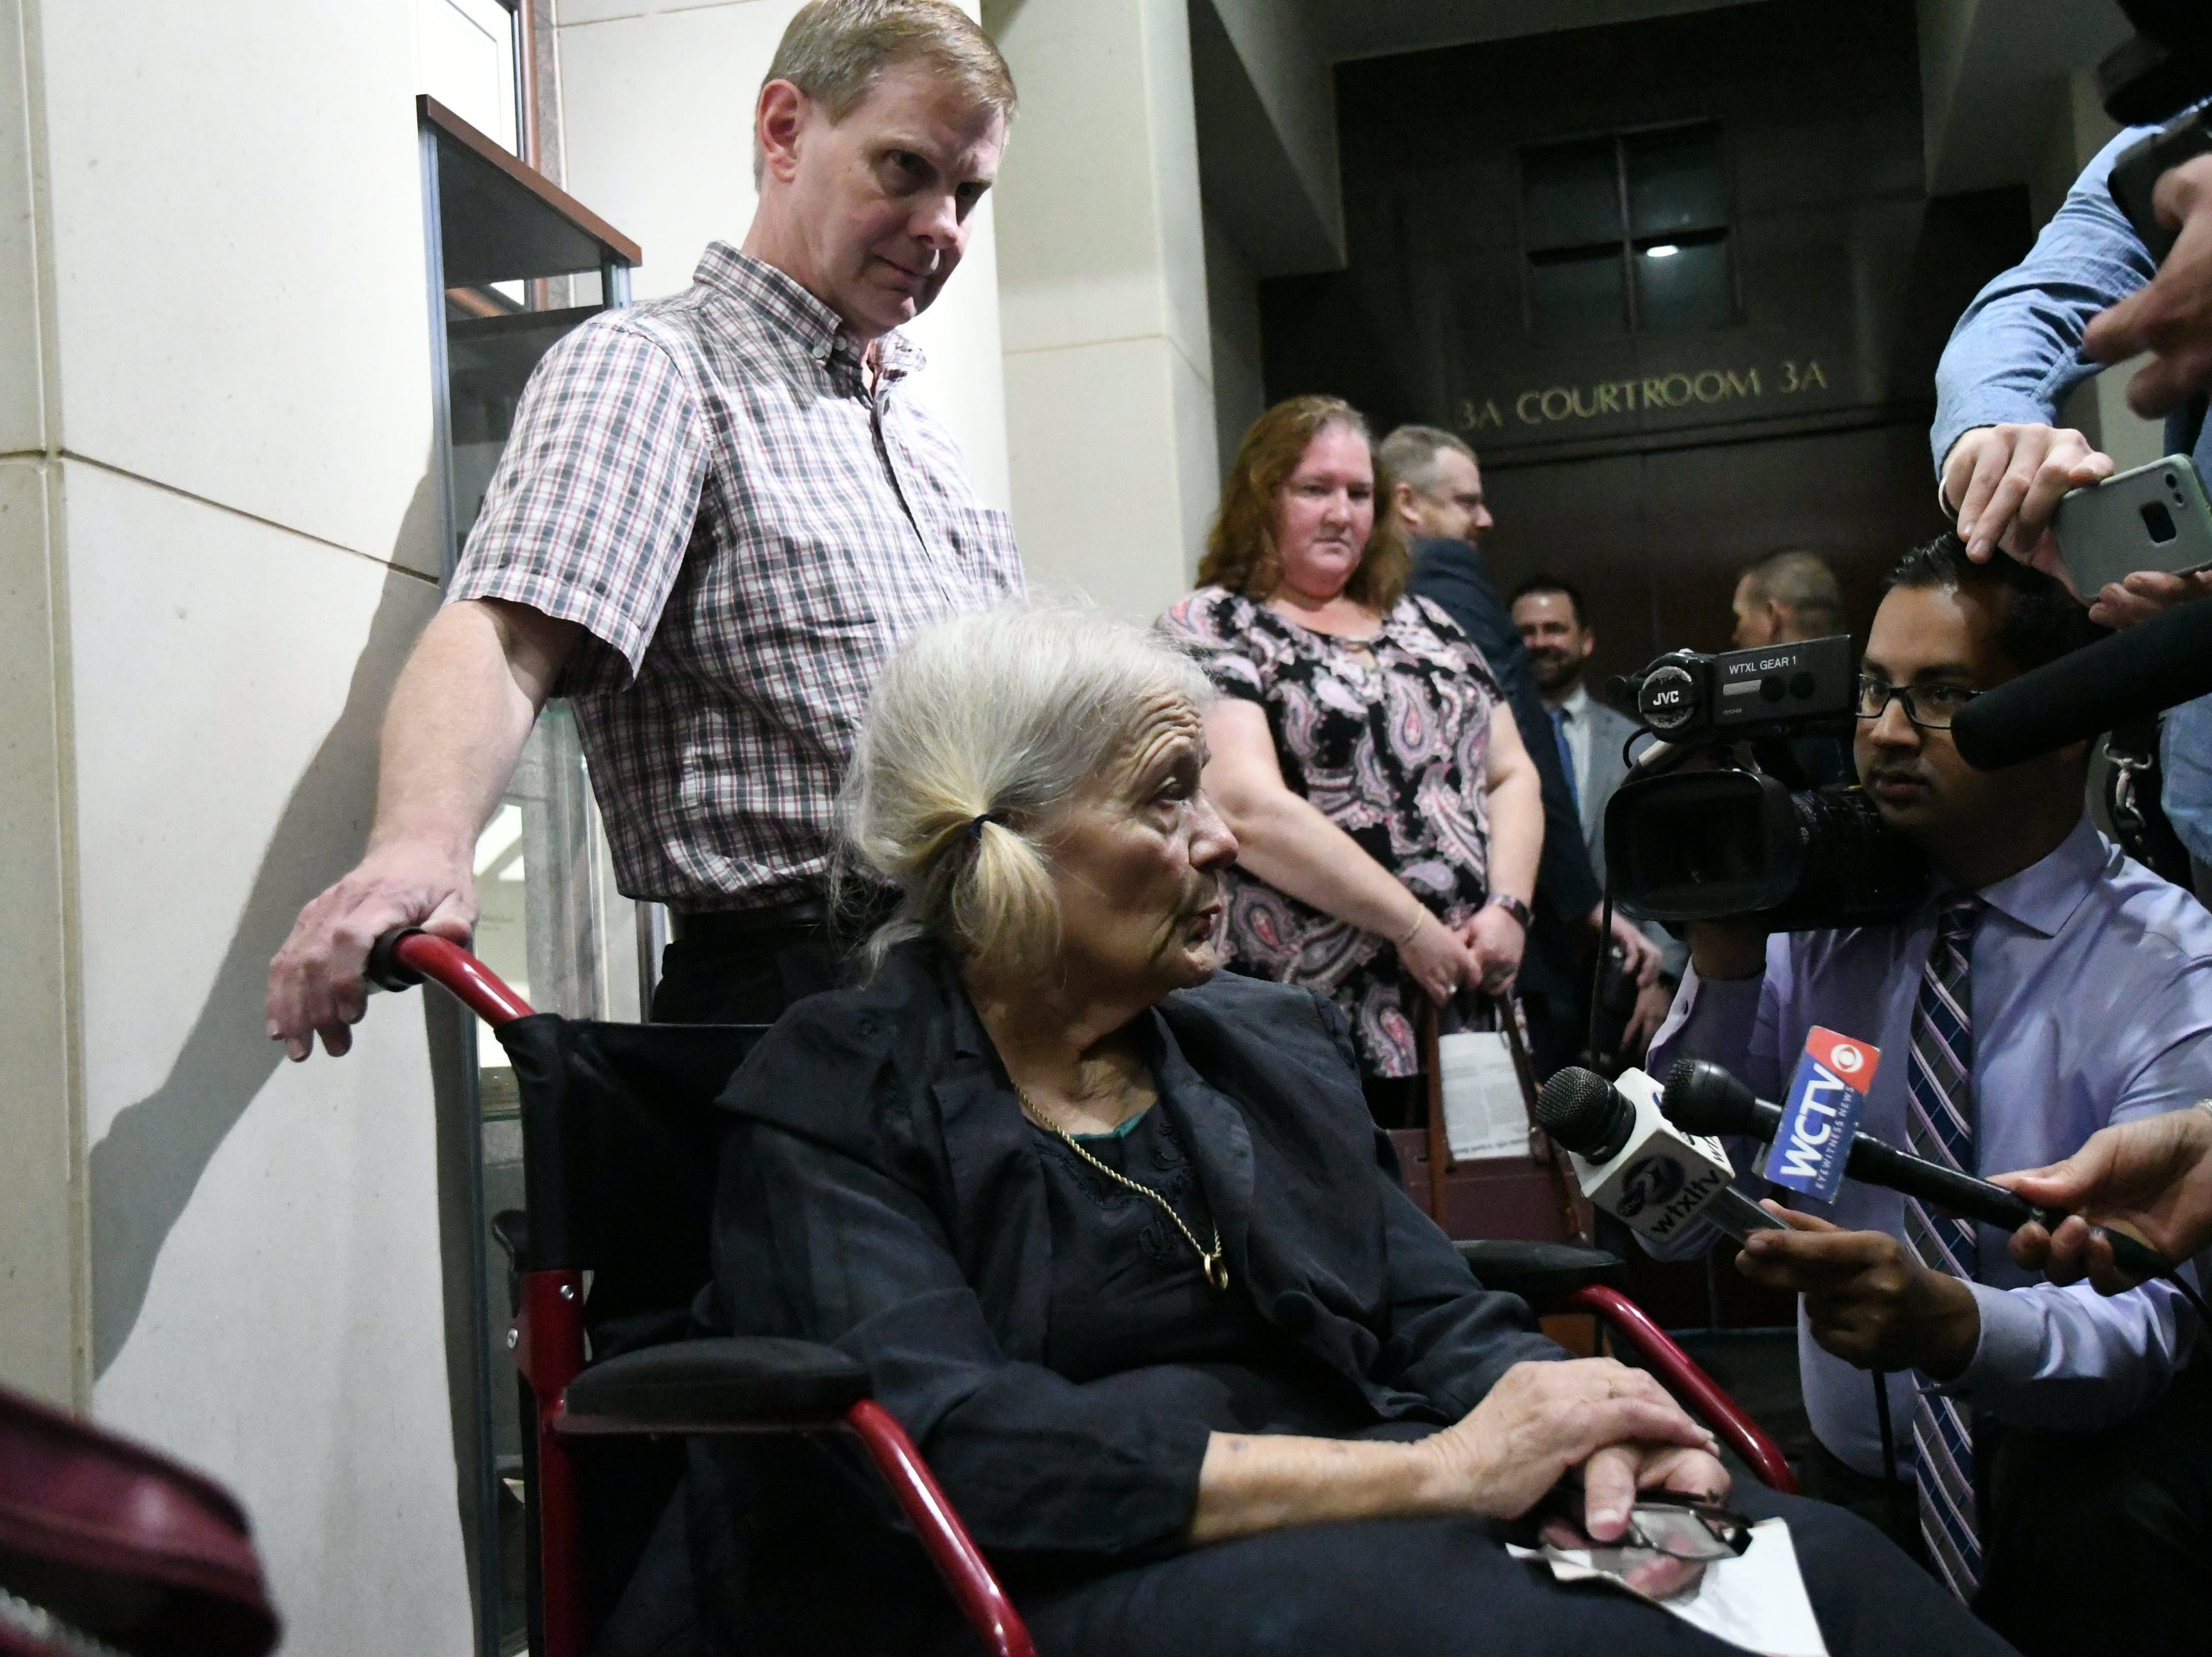 Nick Williams, brother of Mike Williams, the man who was murdered 18 years ago, stands by his mother Cheryl Williams' side as she speaks to the press after the sentencing of Denise Williams for the murder of her husband Mike Williams. Denise was sentenced to life in prison plus 30 years, Wednesday Feb. 6, 2019.